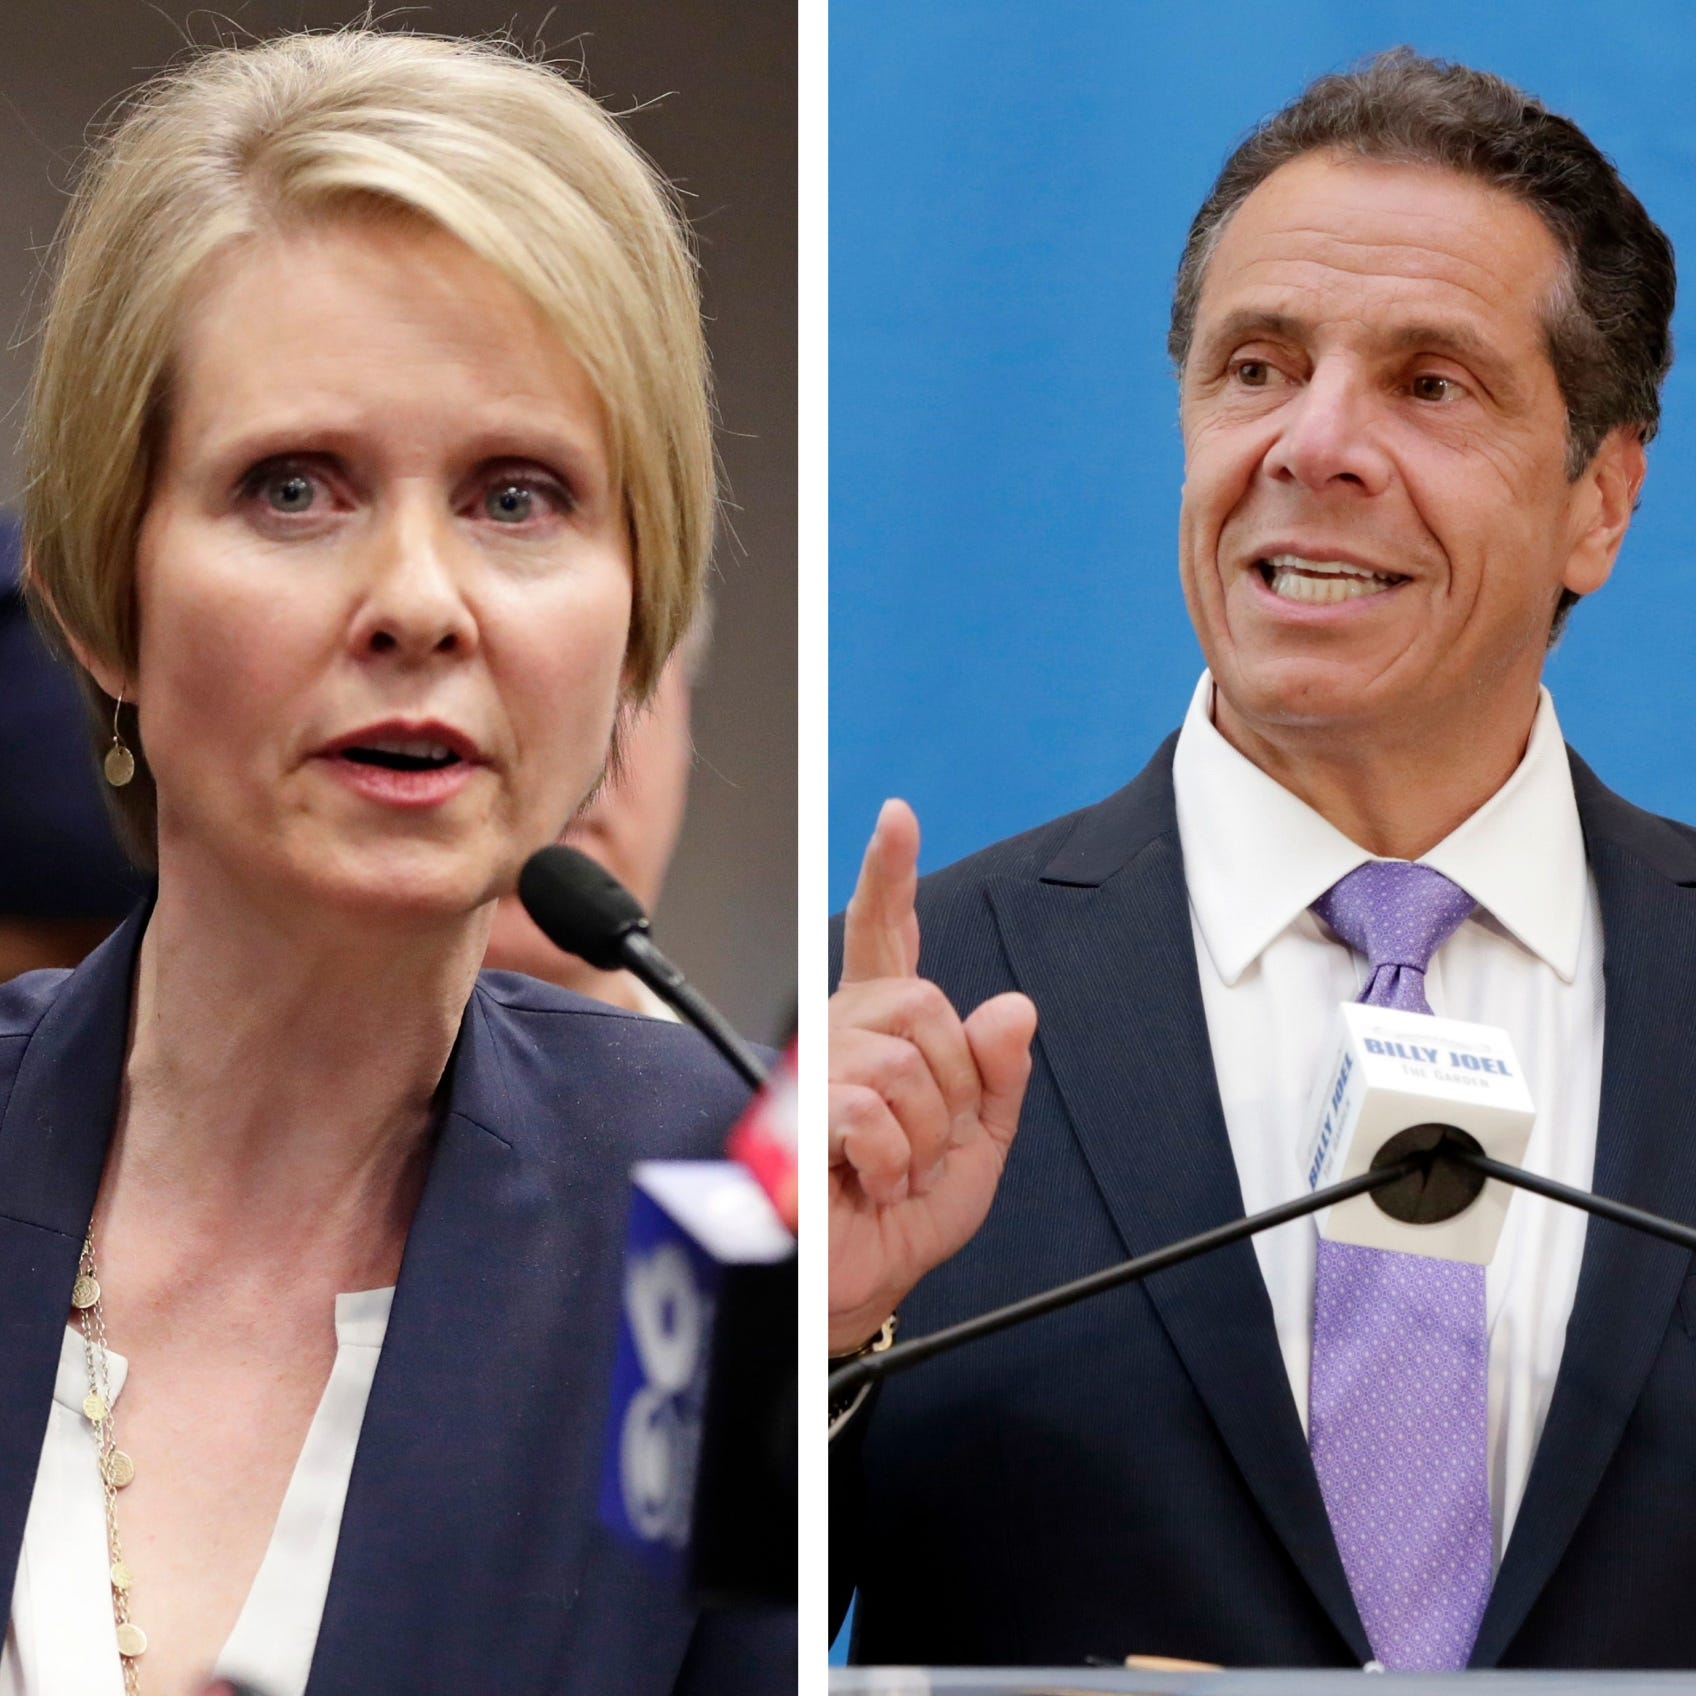 New York primary elections: Andrew Cuomo, Cynthia Nixon race highlights Thursday slate